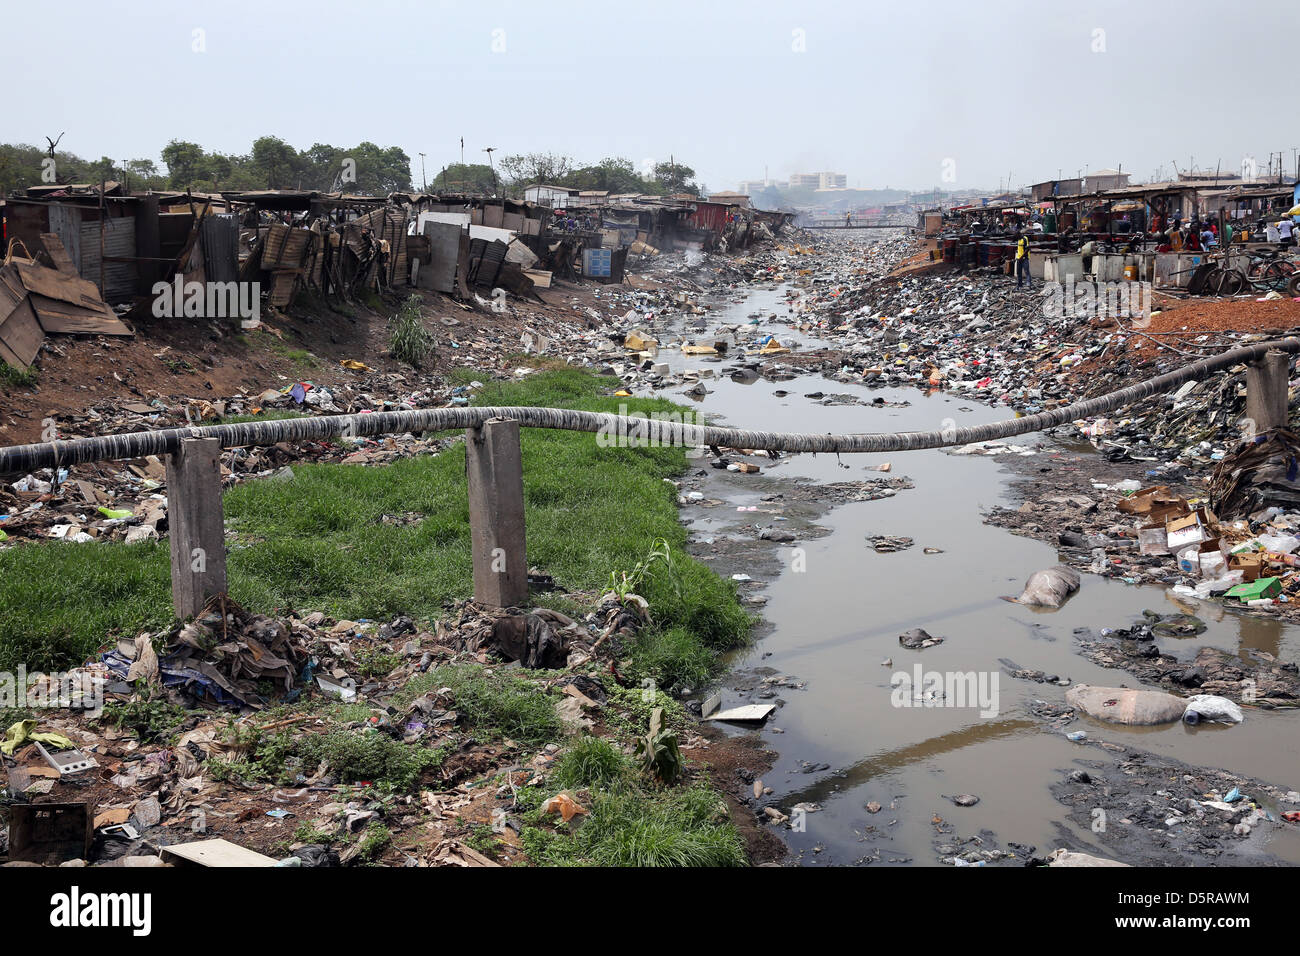 A small river in Accras Agbogbloshie township has become a polluted water body. - Stock Image